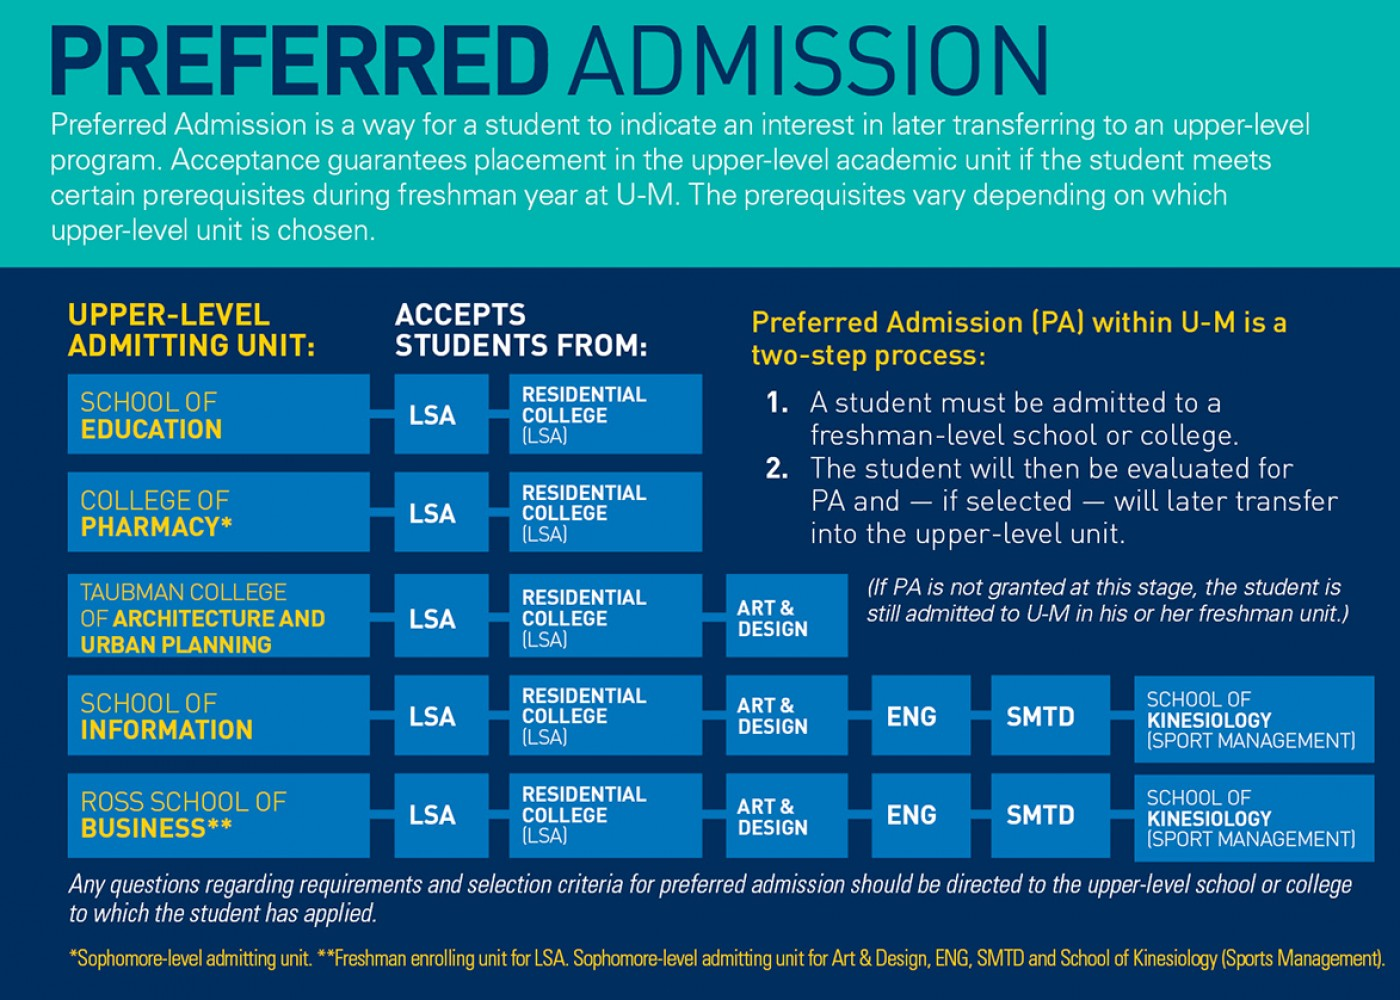 013 Preferred Admit Graphic 6 What Colleges Require Sat Essay Formidable 1400